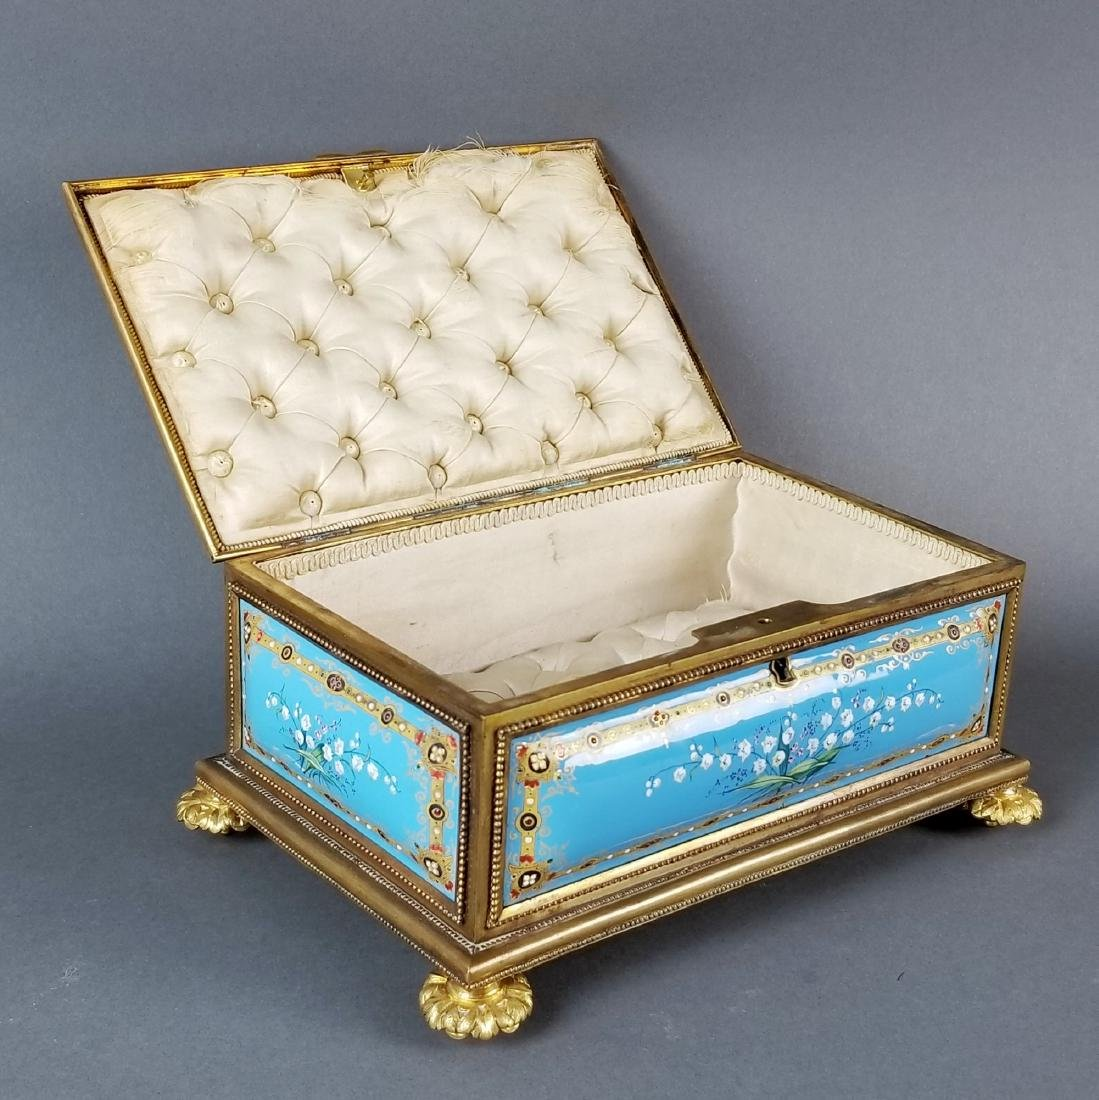 French Enamel and Bronze Handpainted Jewelry Box - 3